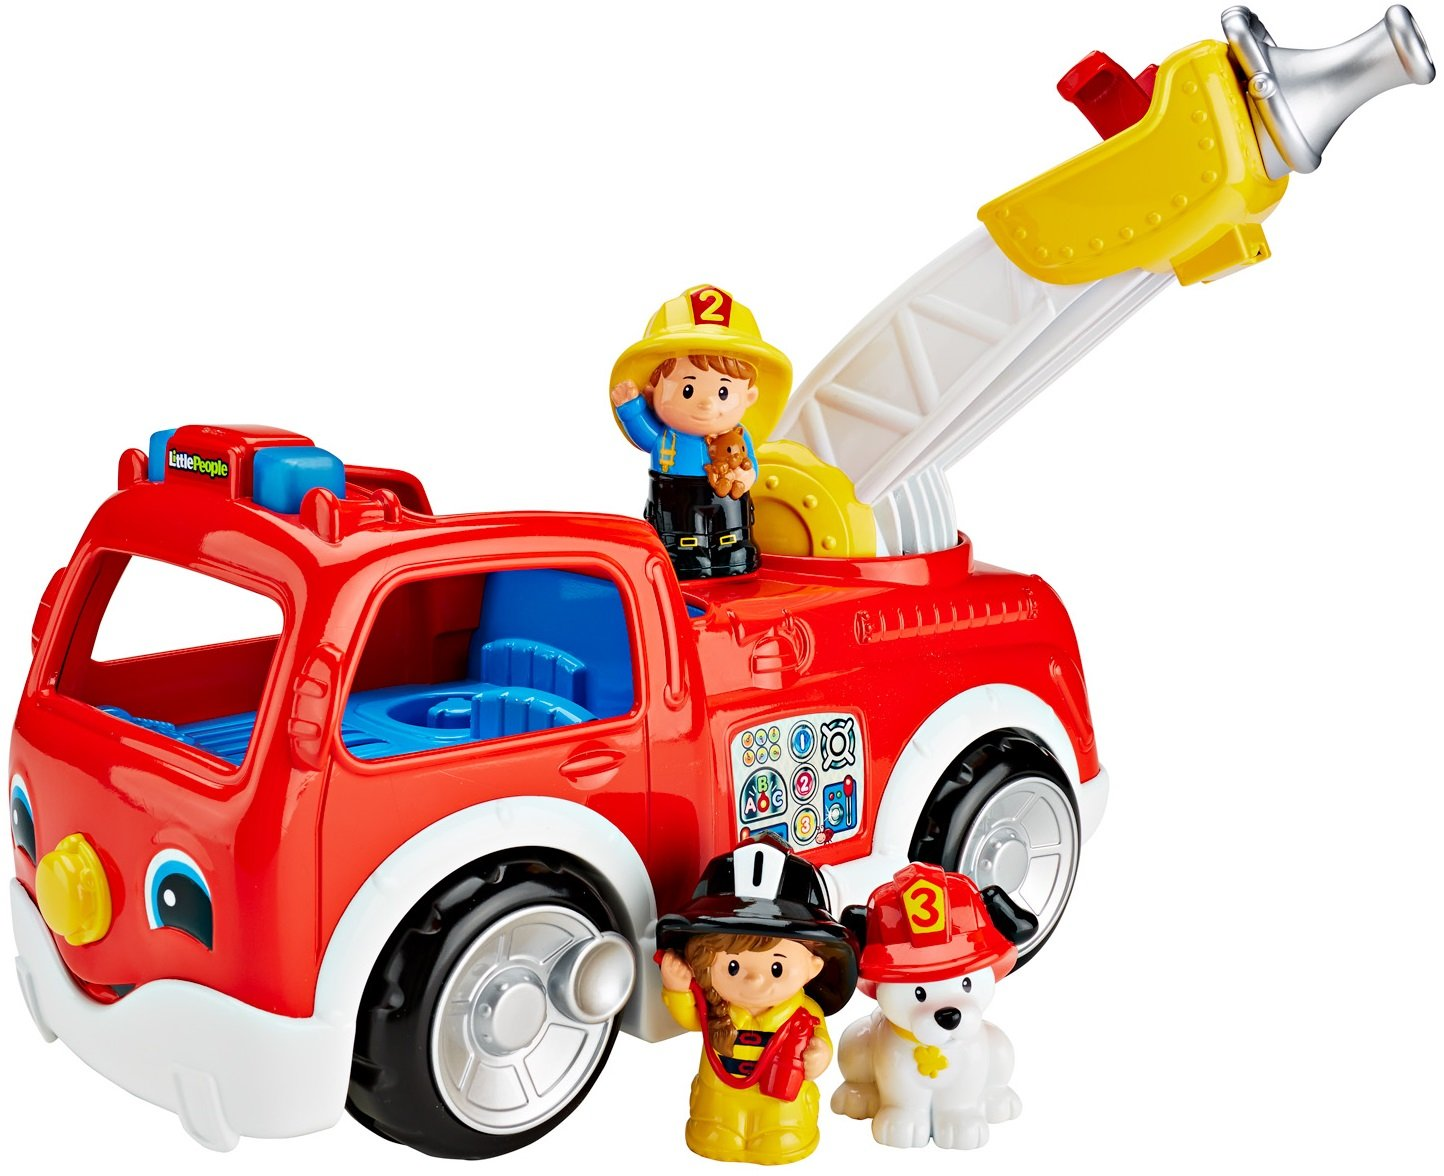 Mattel Fisher Price DNR Little People coche de bomberos